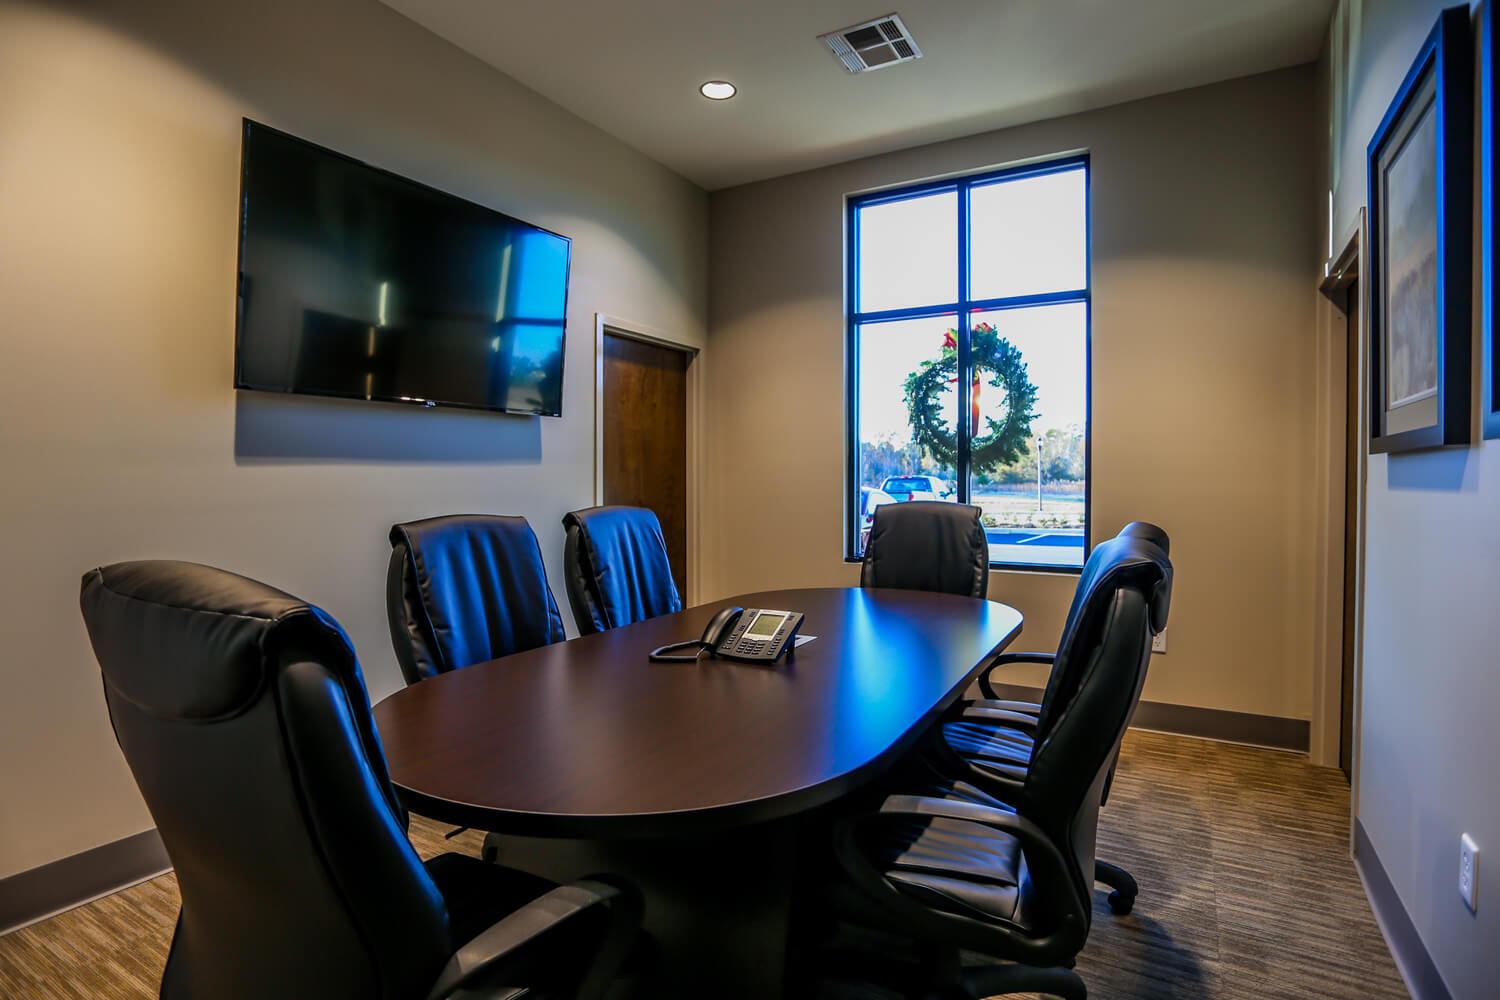 First Cahawba Bank - Conference Room - Designed by Foshee Architecture